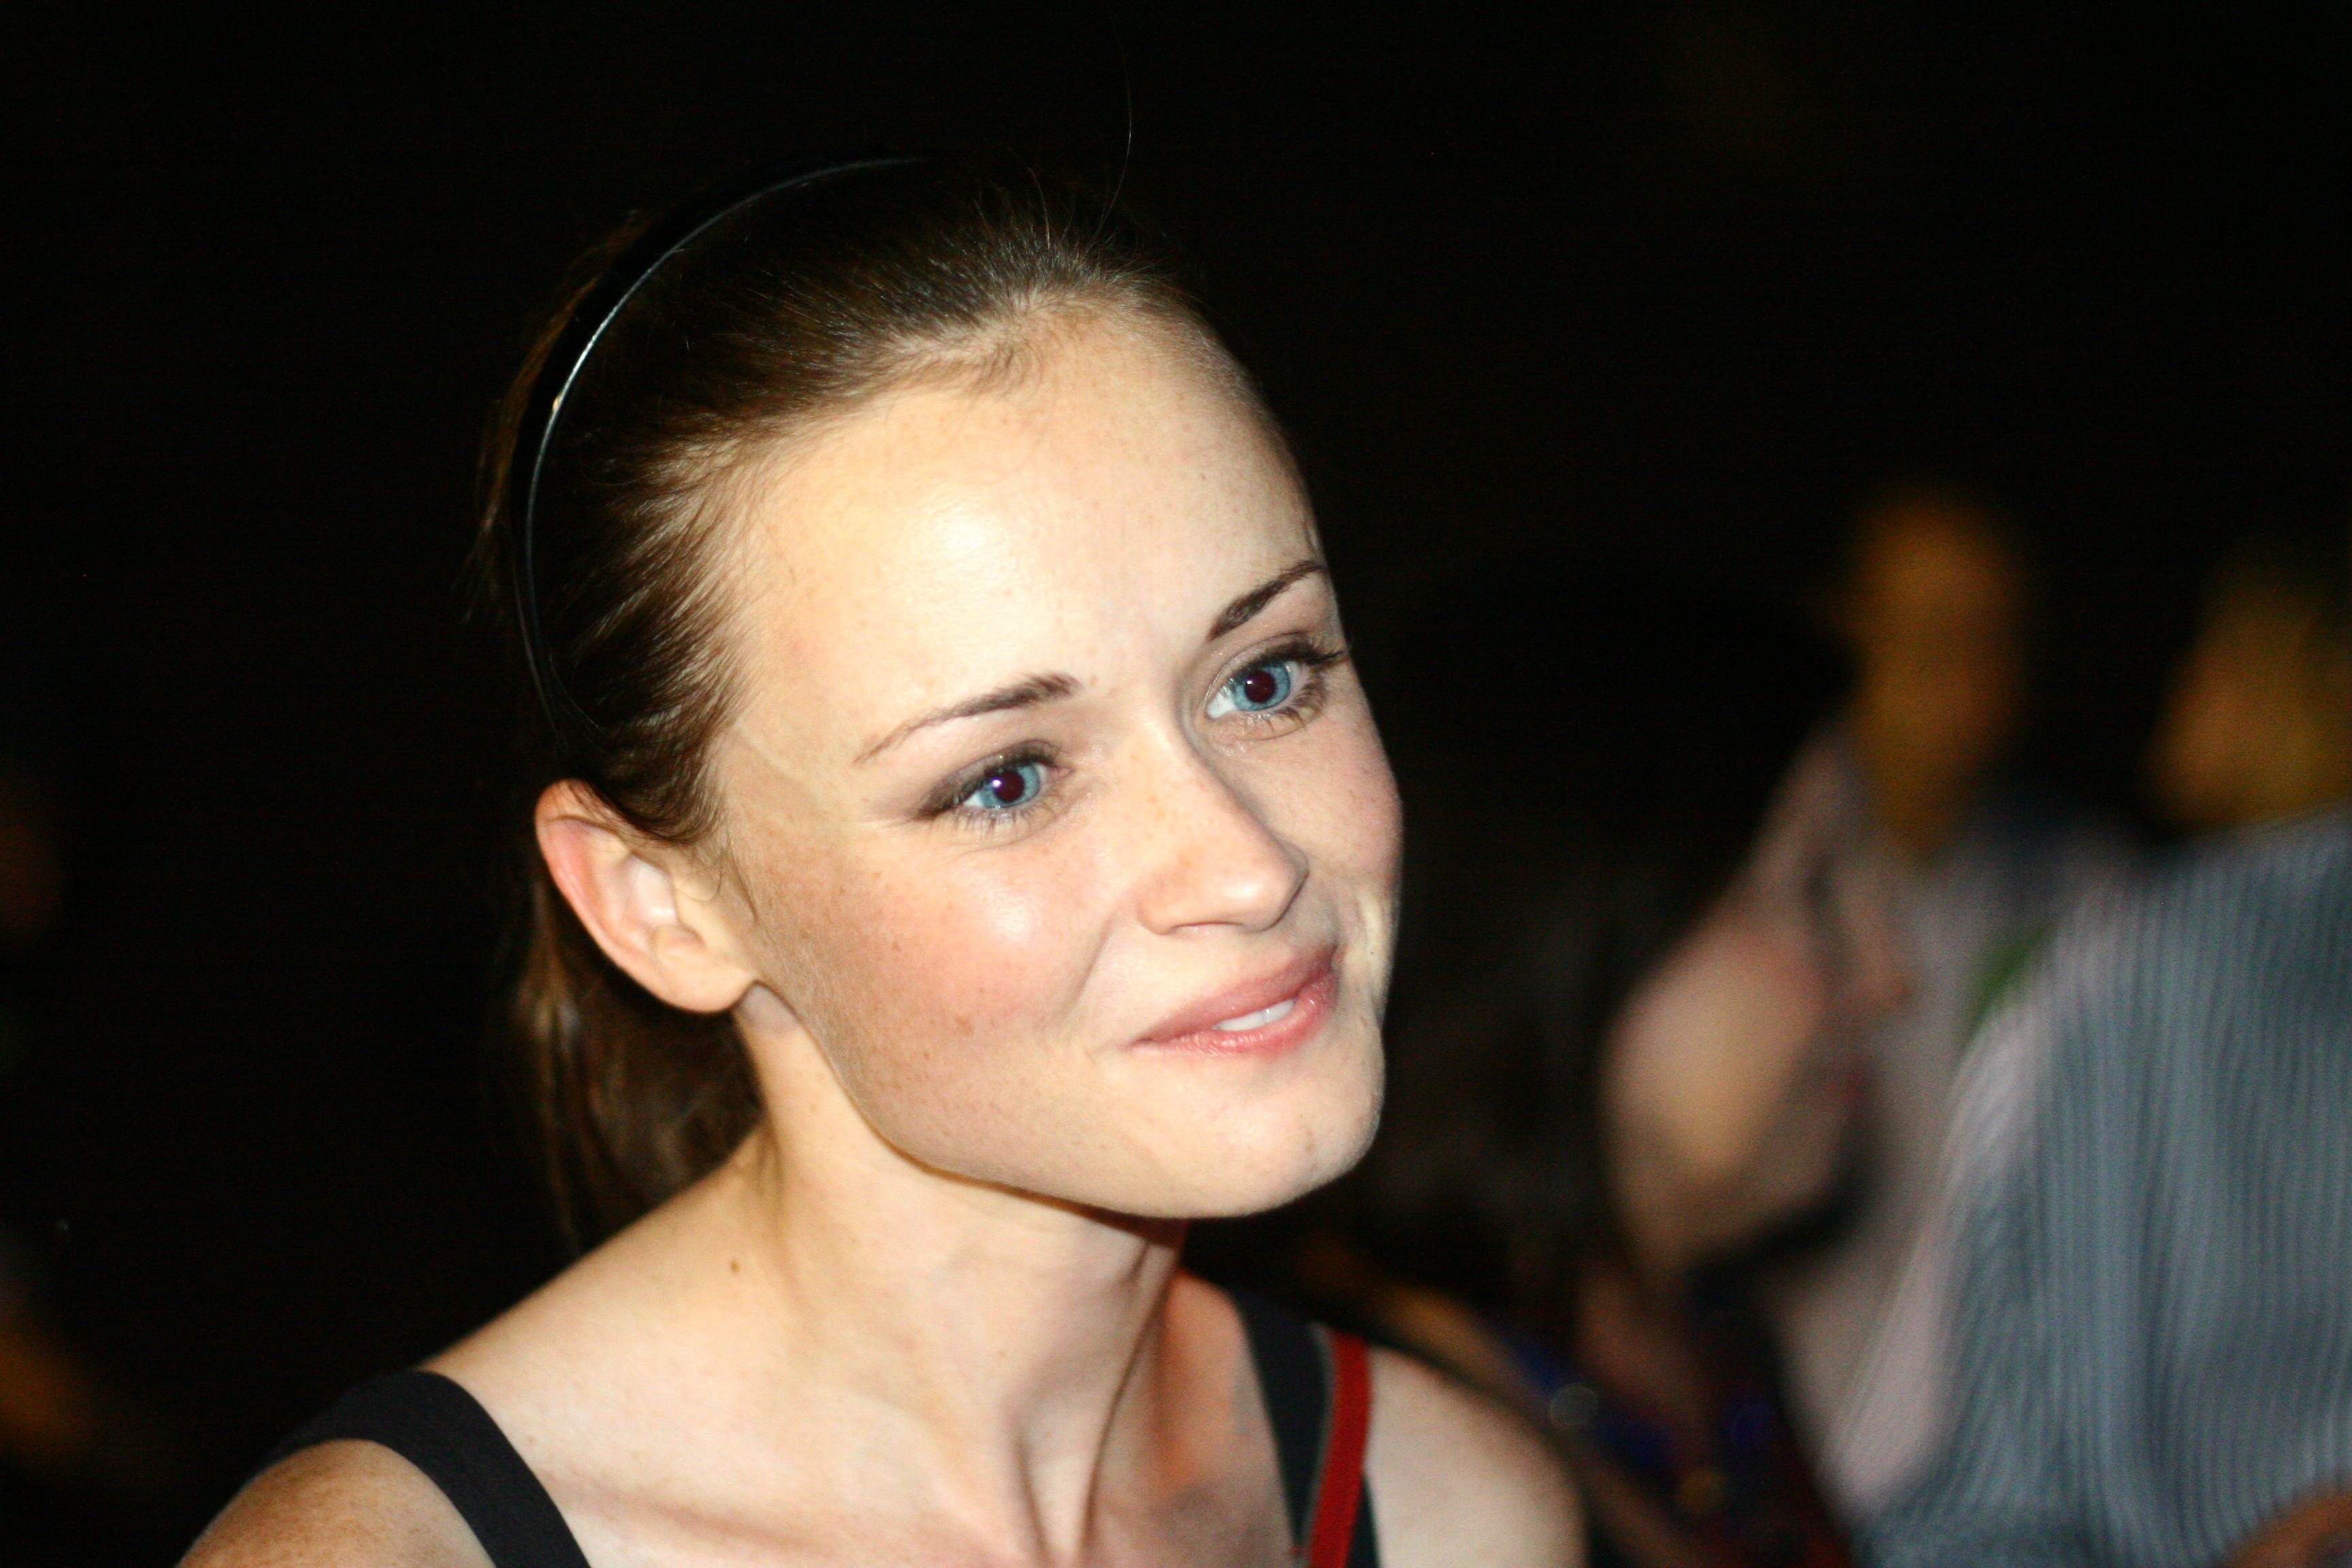 Alexis Bledel wallpapers (27816). Best 50 € bonus williamhill logo williamhill.com Alexis Bledel williamhill freebet code 2015 pictures